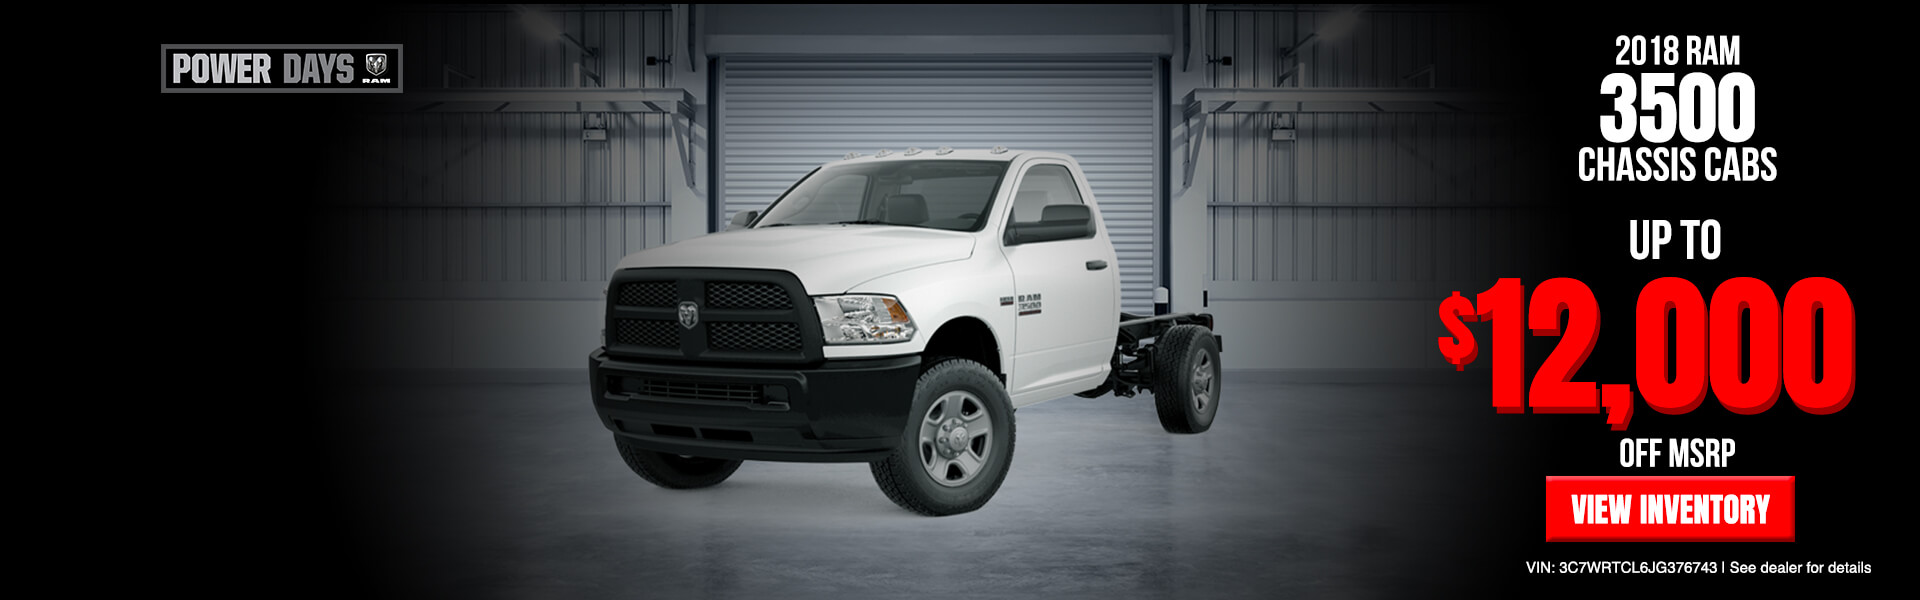 Ram Chassis Cab 3500